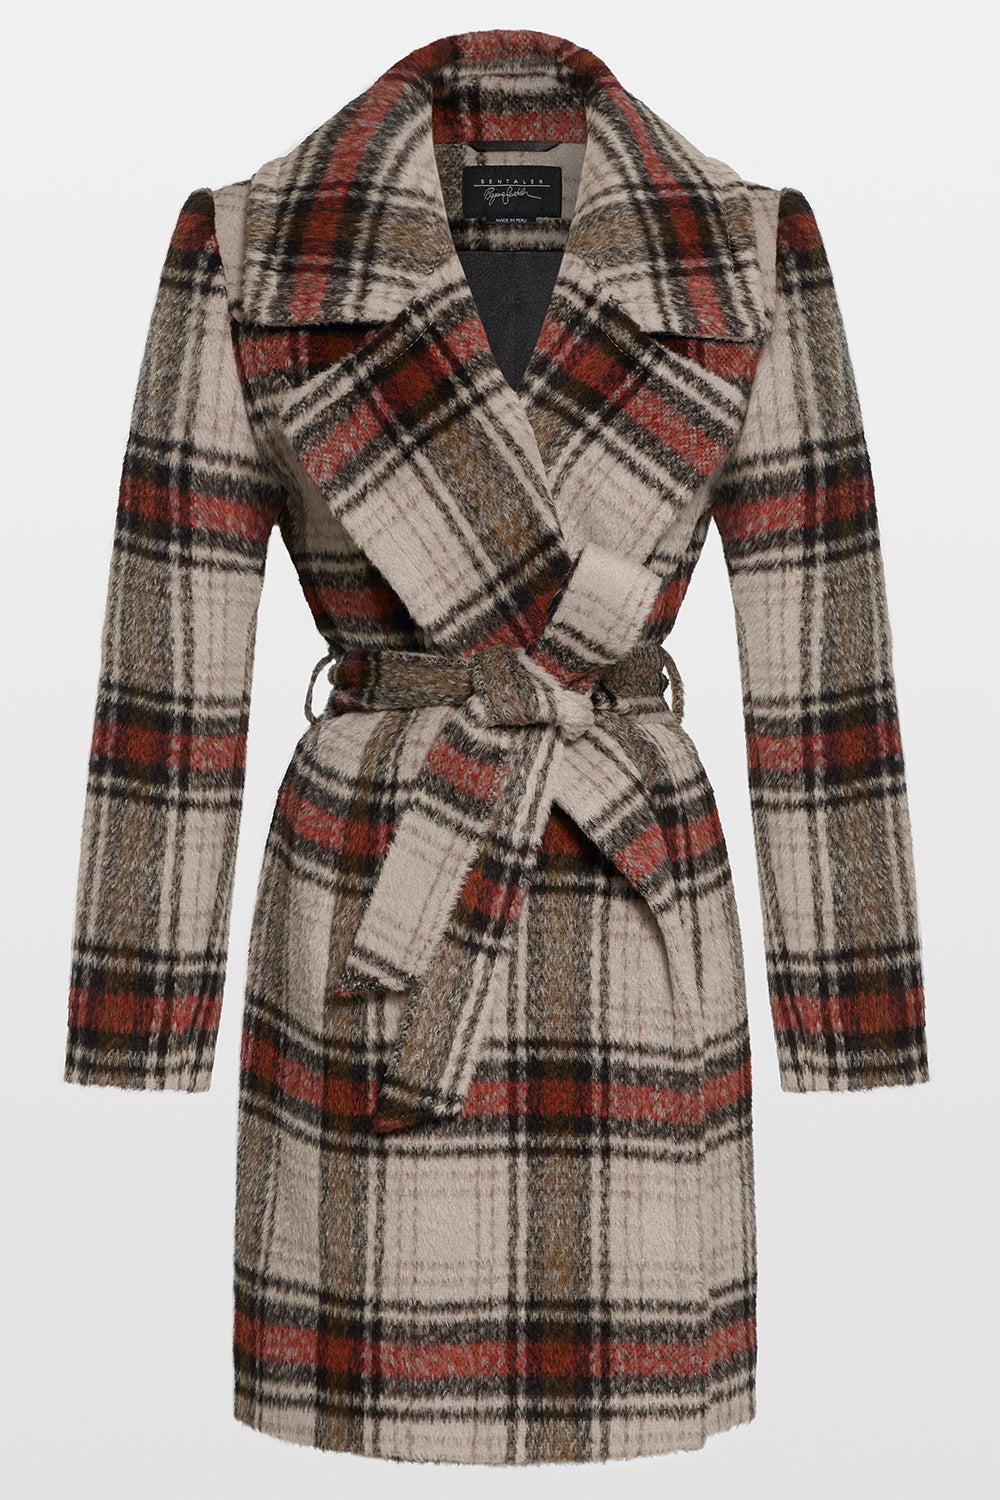 Sentaler Plaid Mid Length Notched Collar Wrap Coat featured in Suri Alpaca and available in Sand Plaid. Seen off model.